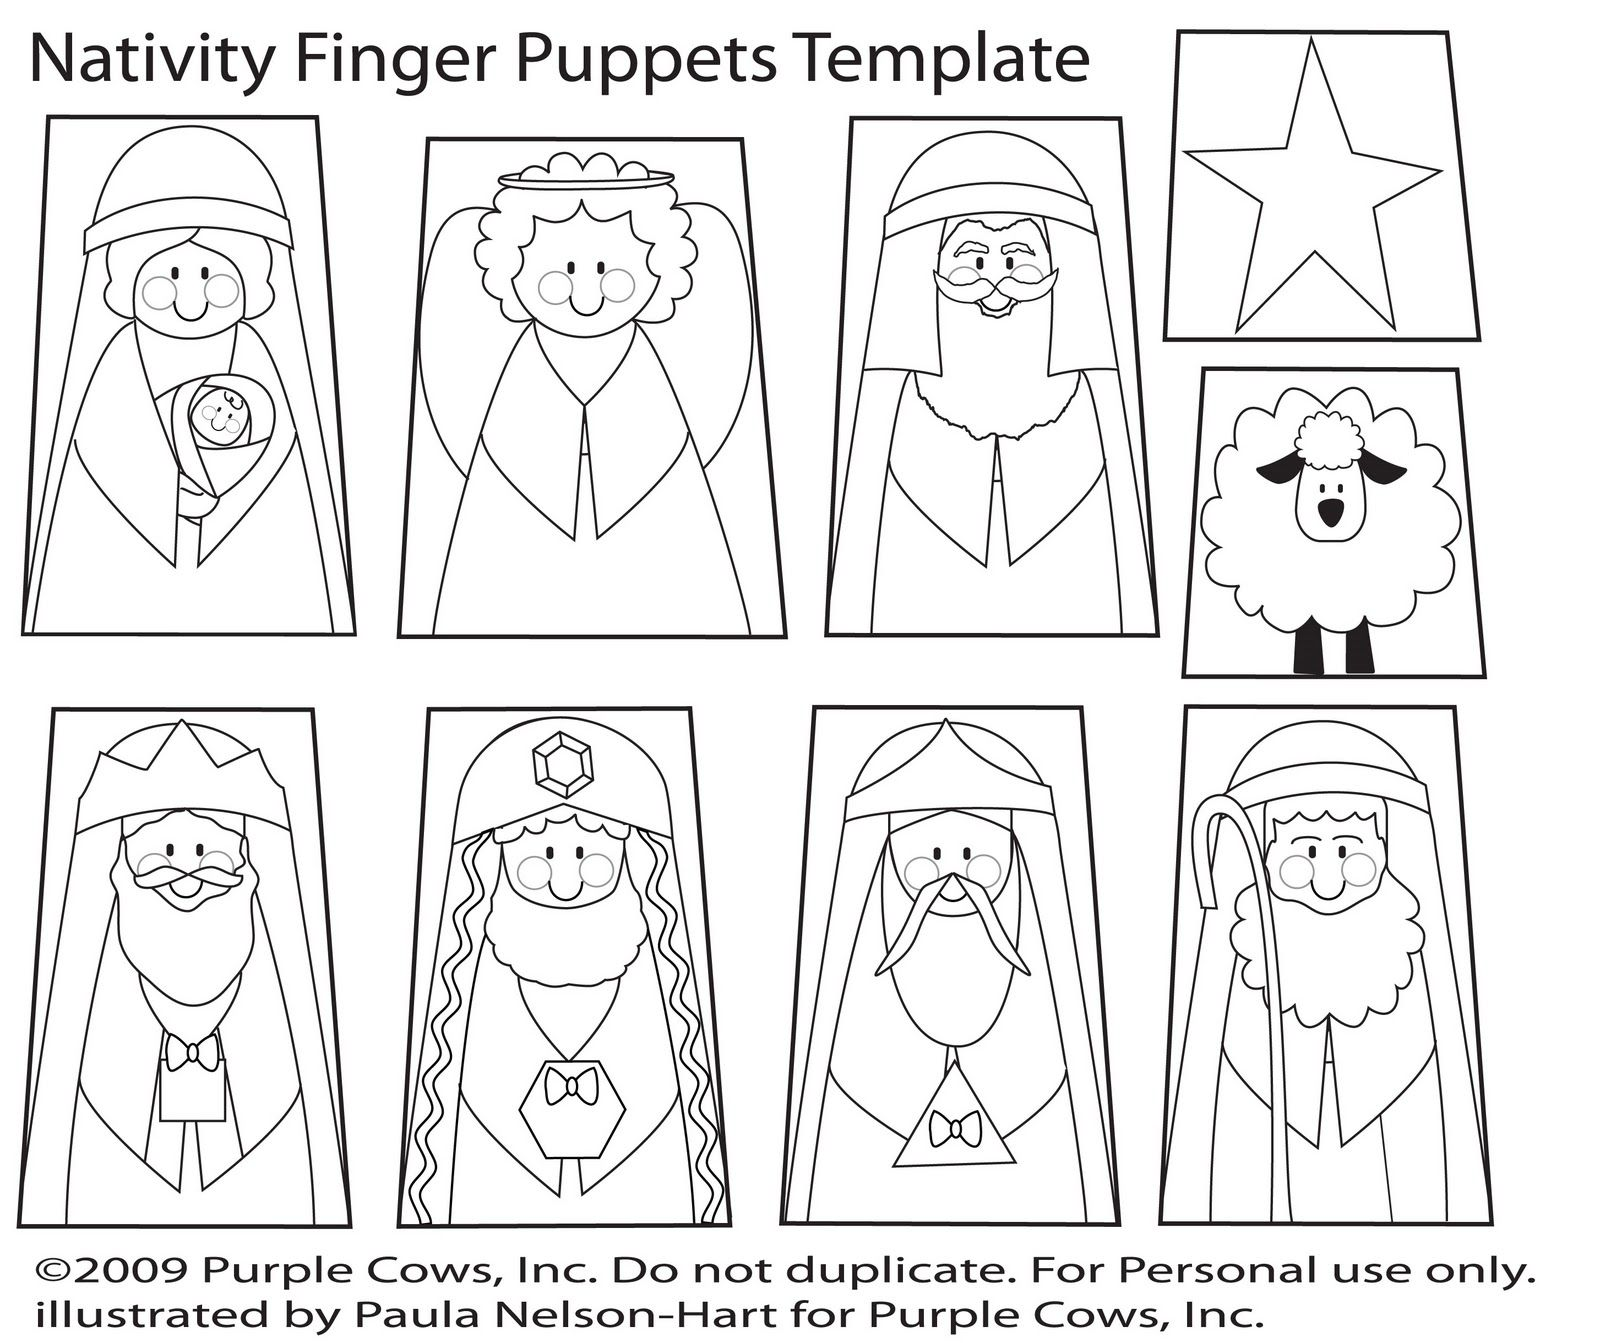 paula-nativity puppet template.jpg] | Crafts | Pinterest | Puppet ...